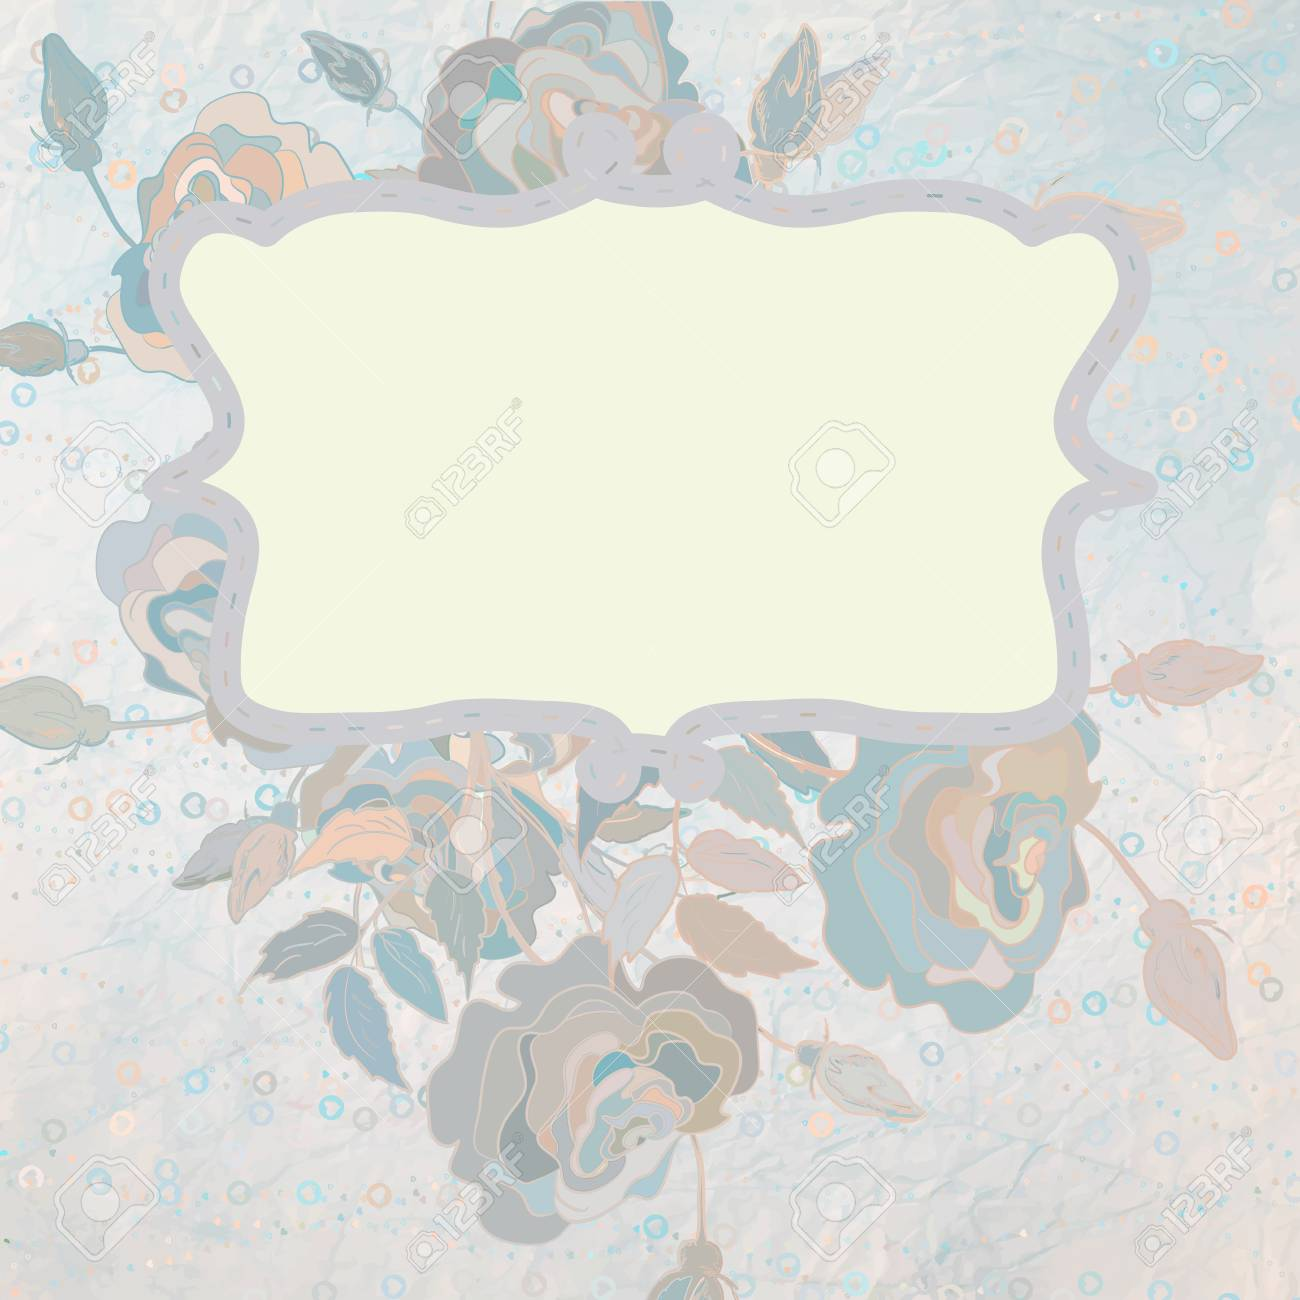 Floral style background design Stock Vector - 15274415